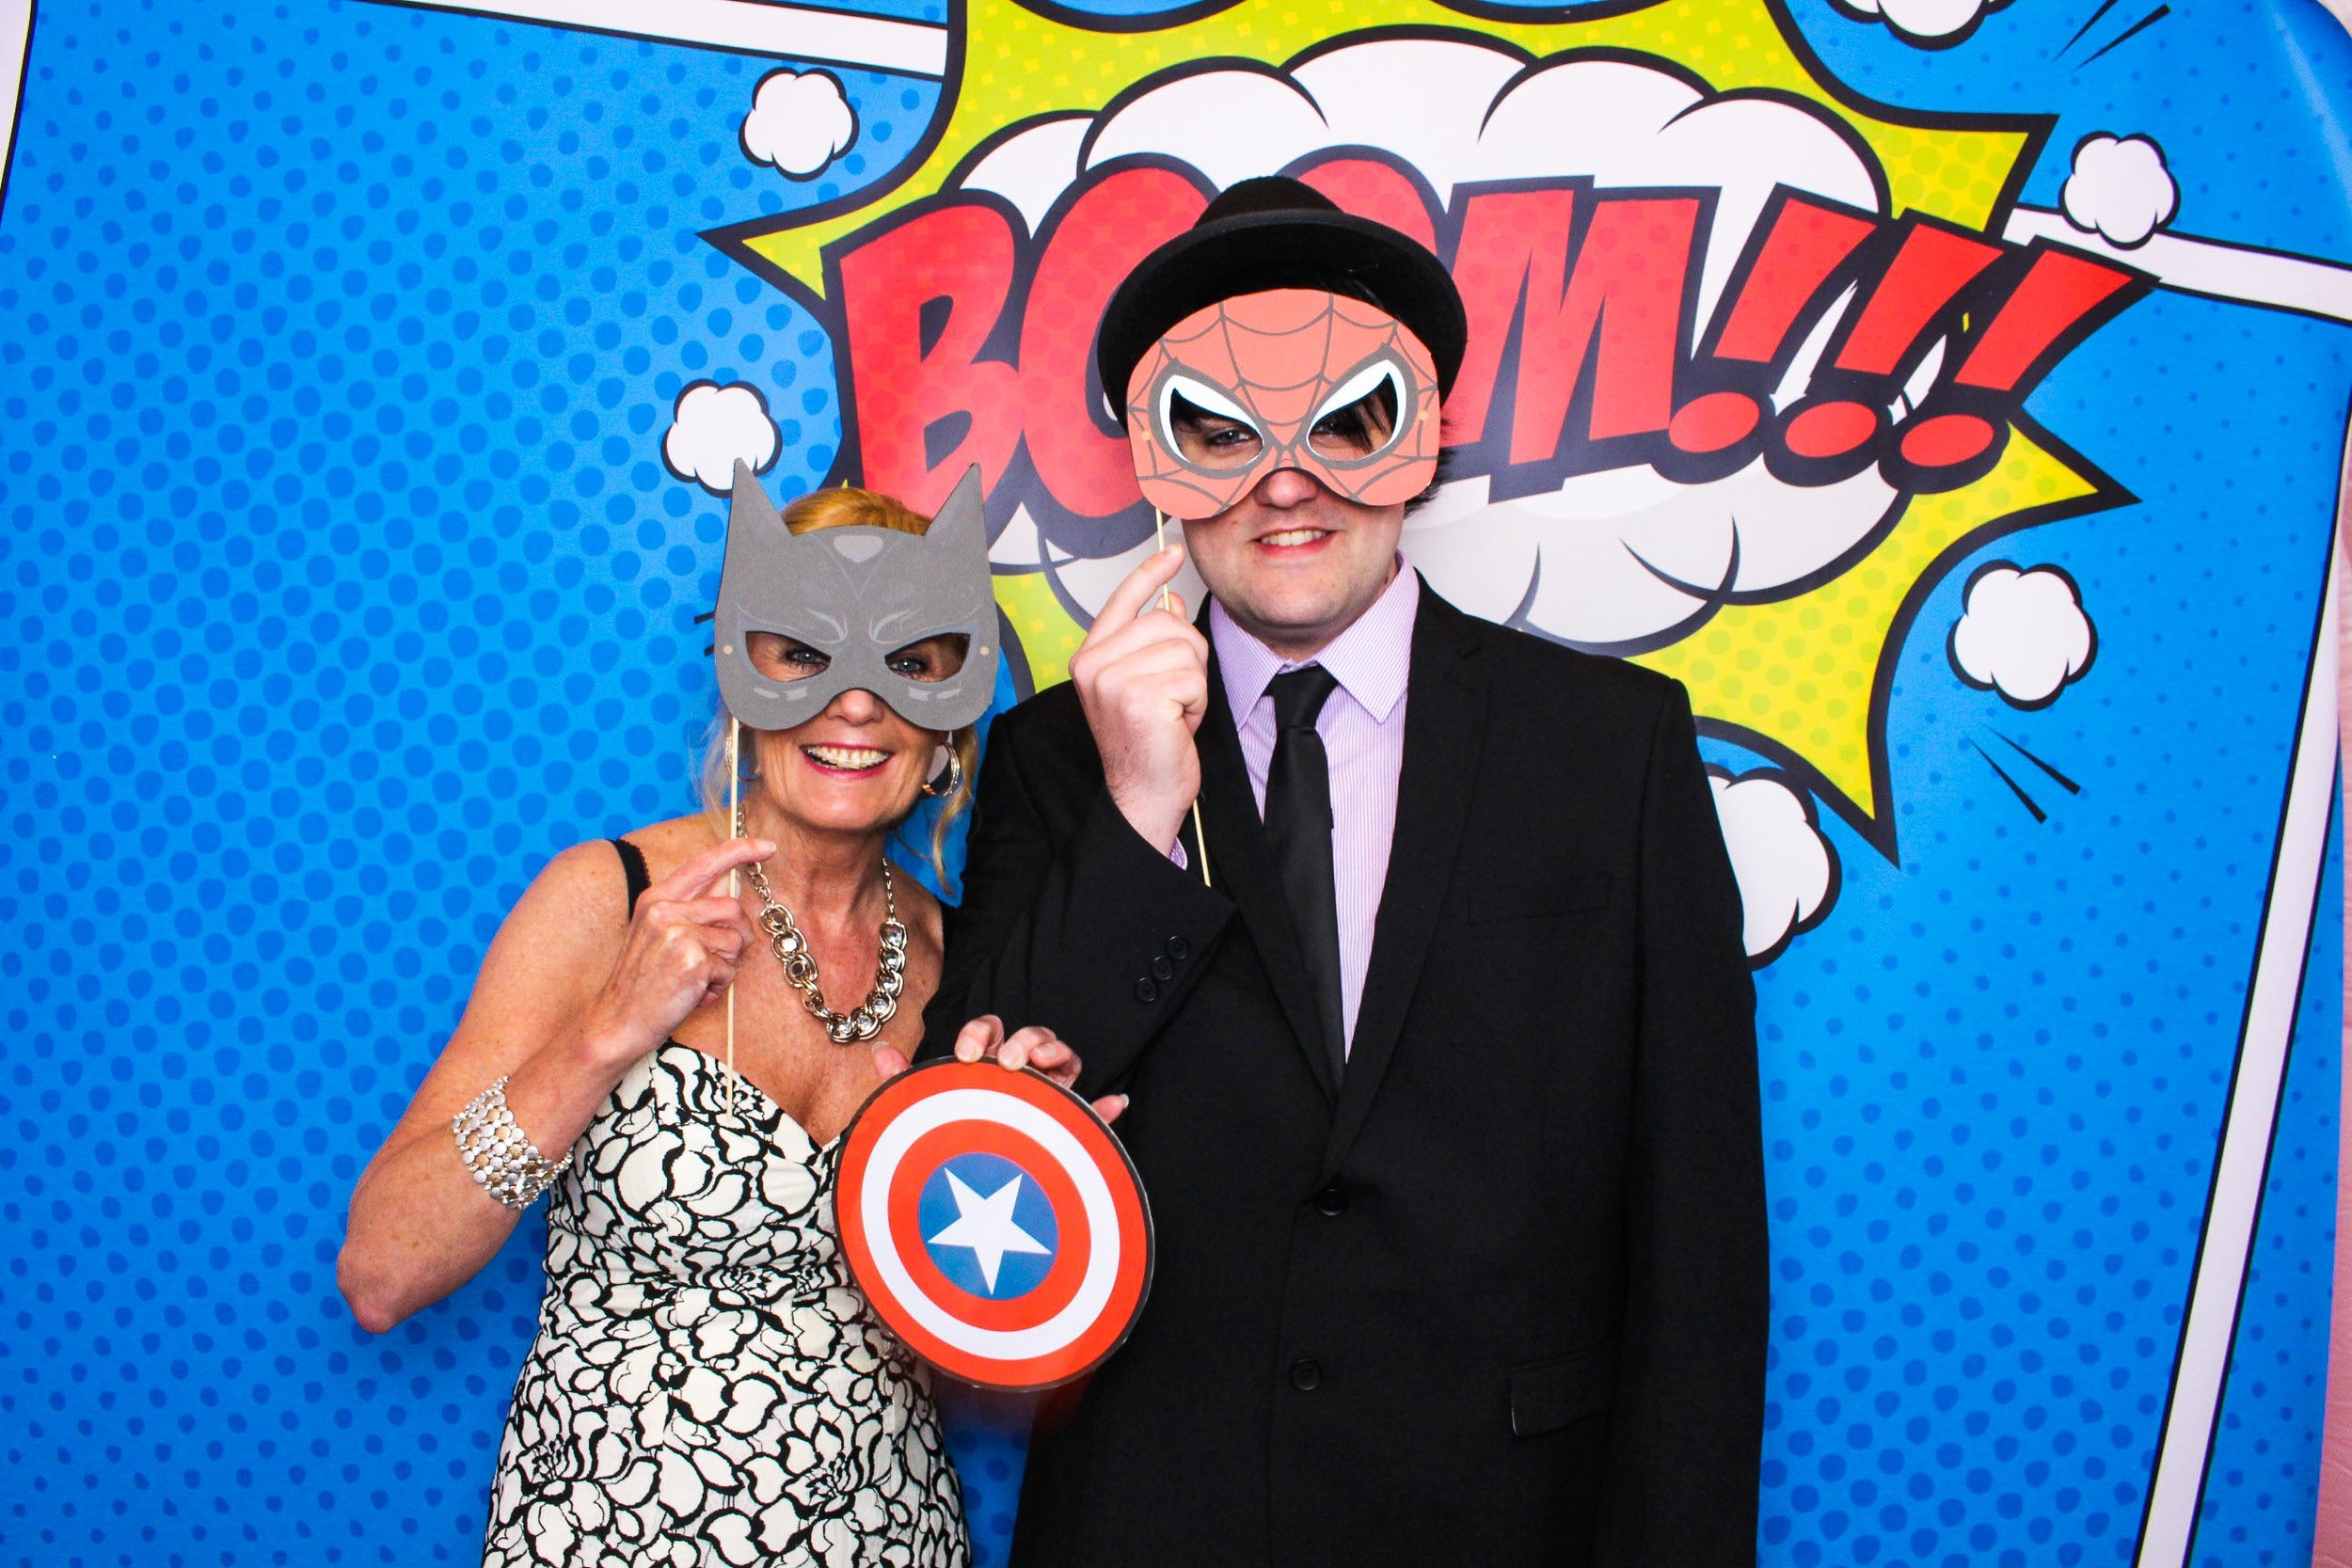 Fotoauto Photo Booth Hire - Shop Direct-14.jpg